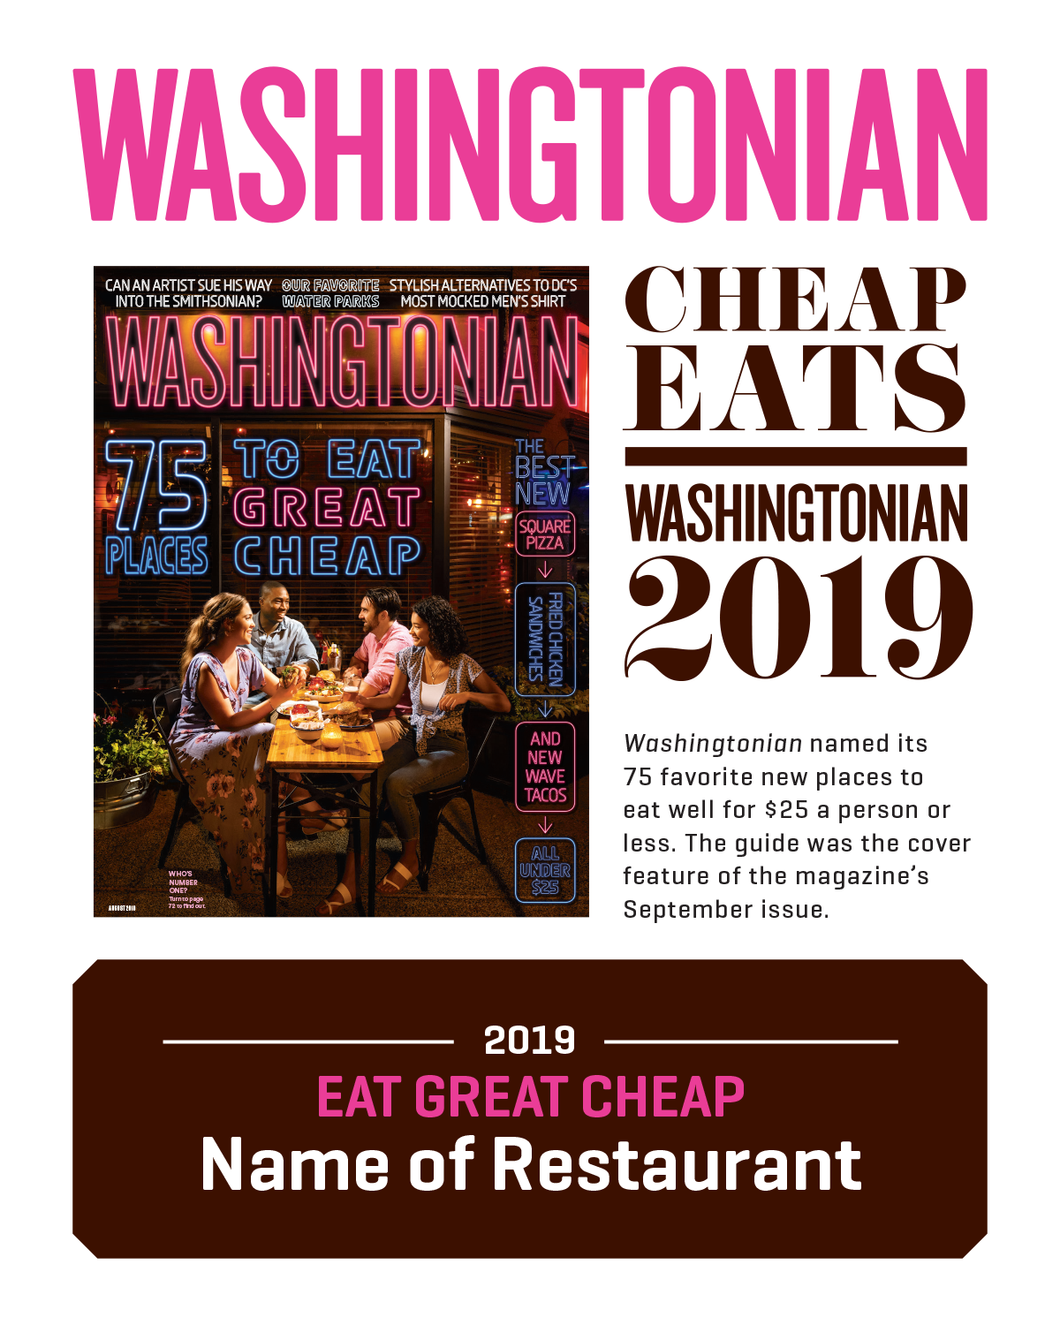 Washingtonian Cheat Eats Plaque